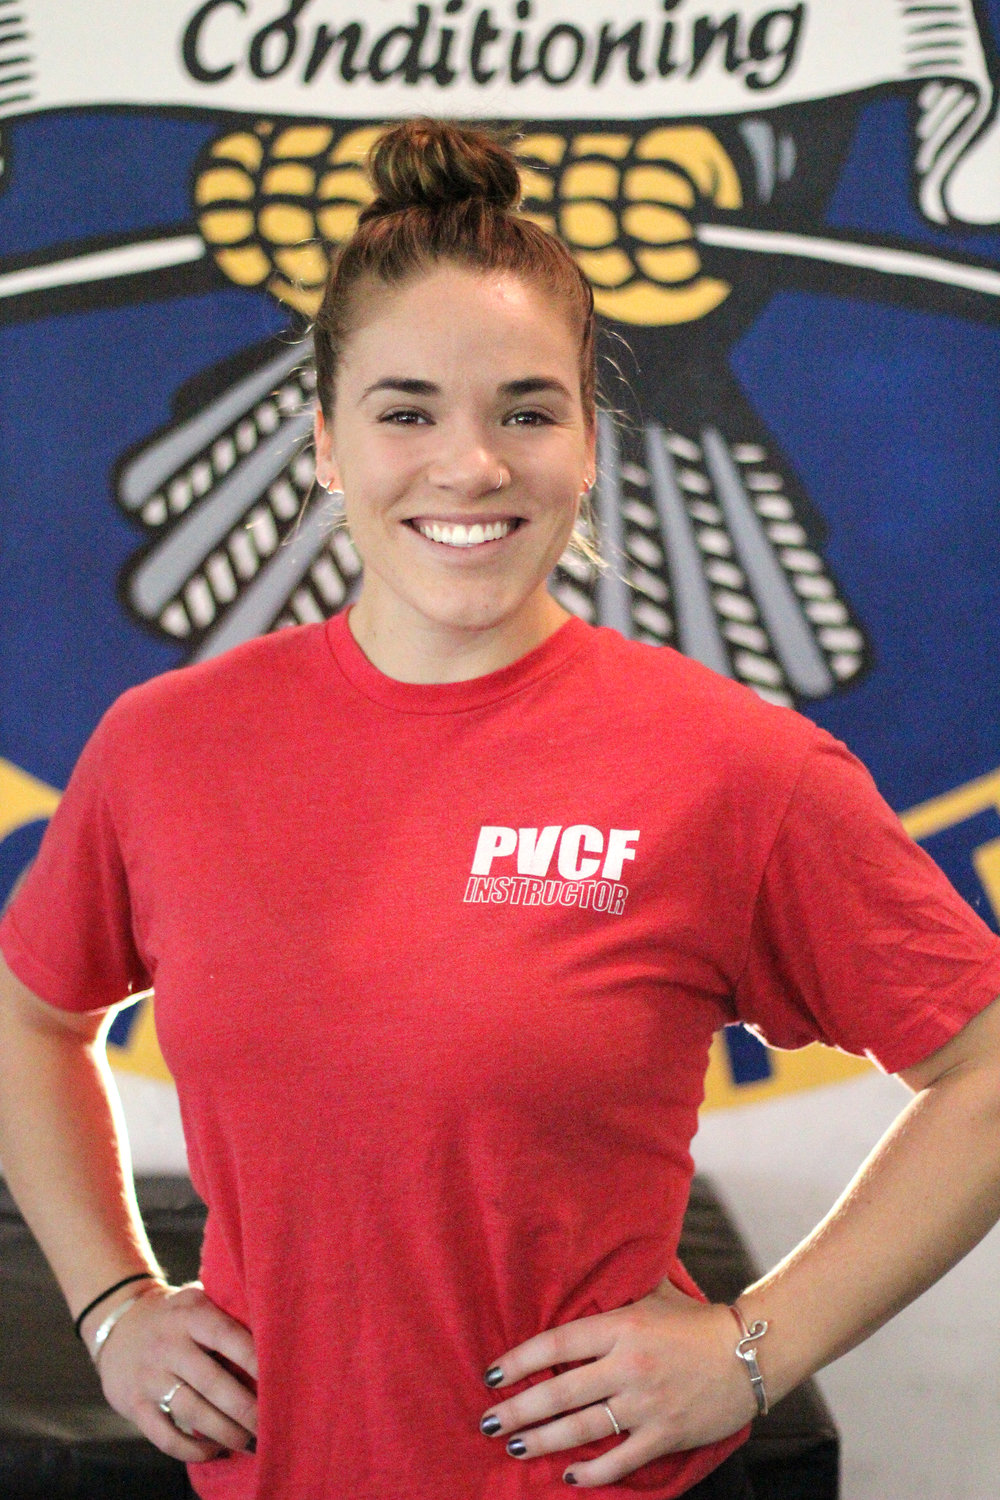 Pioneer Valley CrossFit just became even brighter! We are thrilled to welcome Haley York to our coaching team!